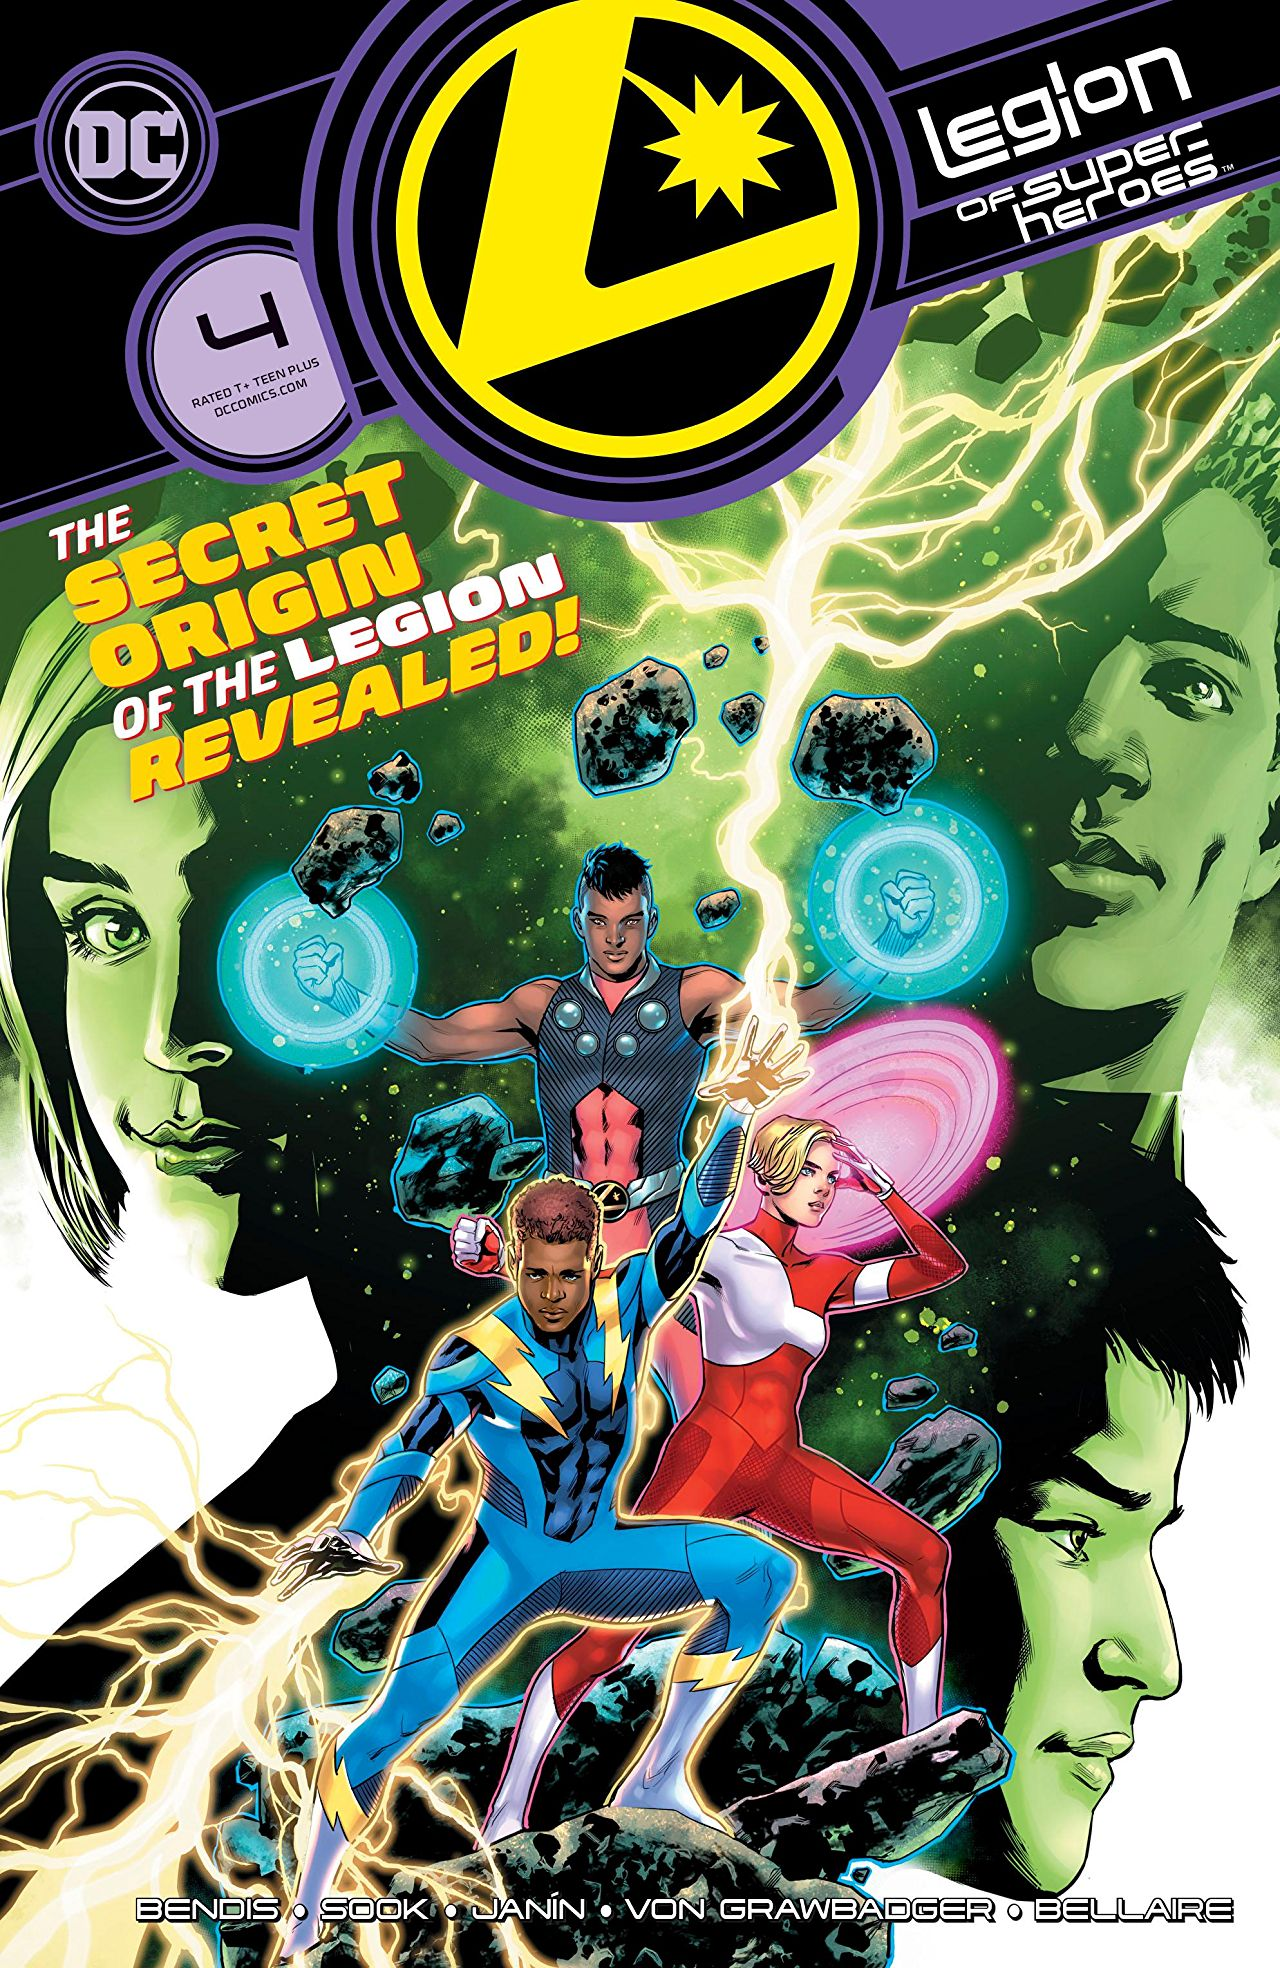 Legion of Super-Heroes (Vol. 8)  #4